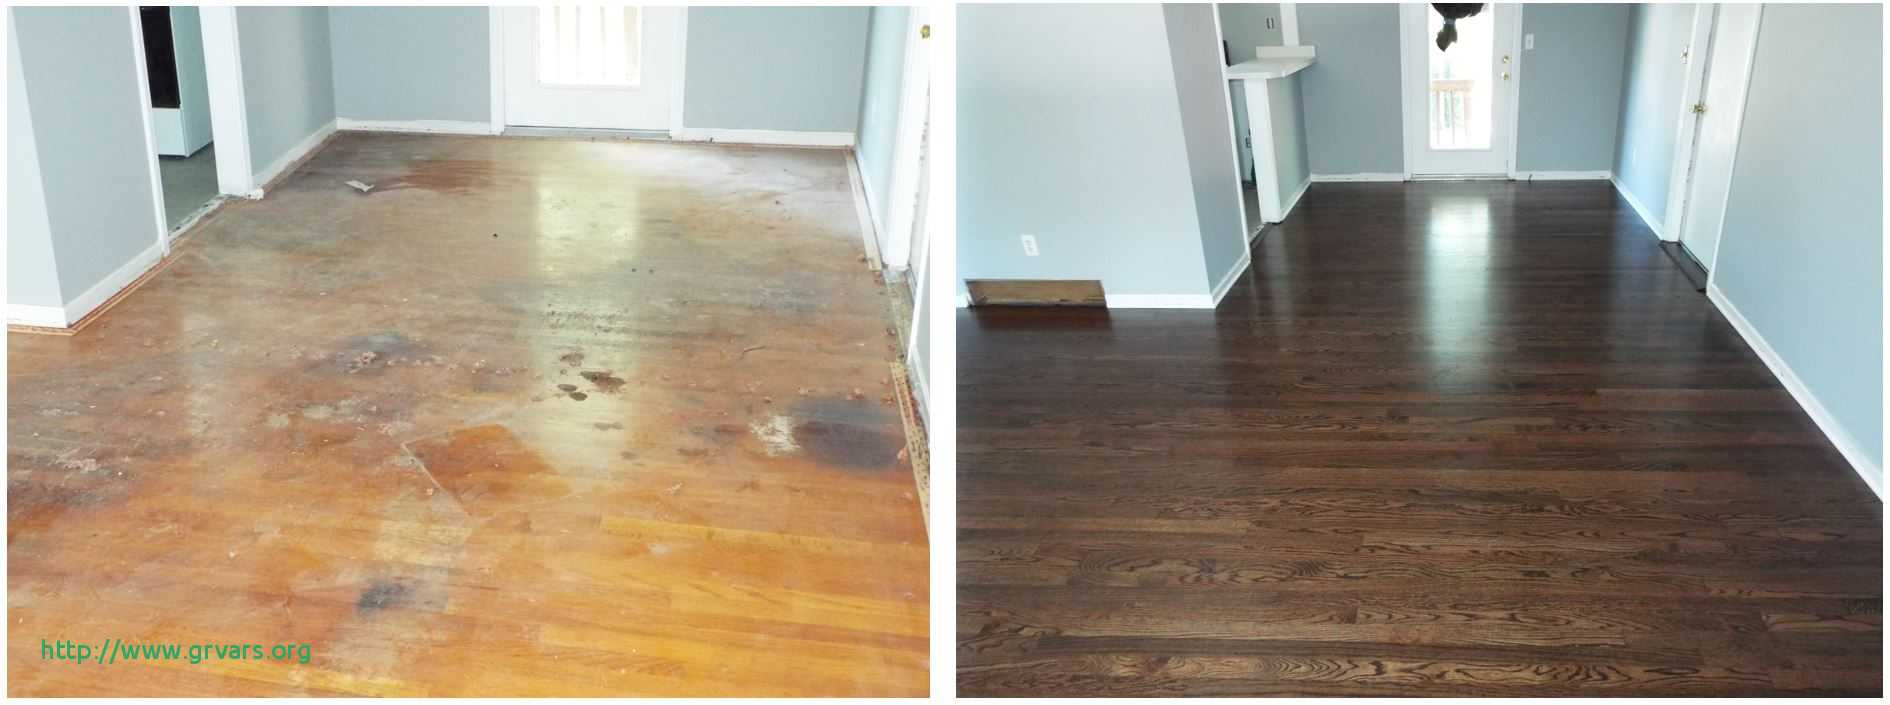 A and C Hardwood Floor Refinishing Company Of 17 Frais Hardwood Flooring Monmouth County Nj Ideas Blog Regarding Hardwood Floor Refinishing Monmouth County Nj Home